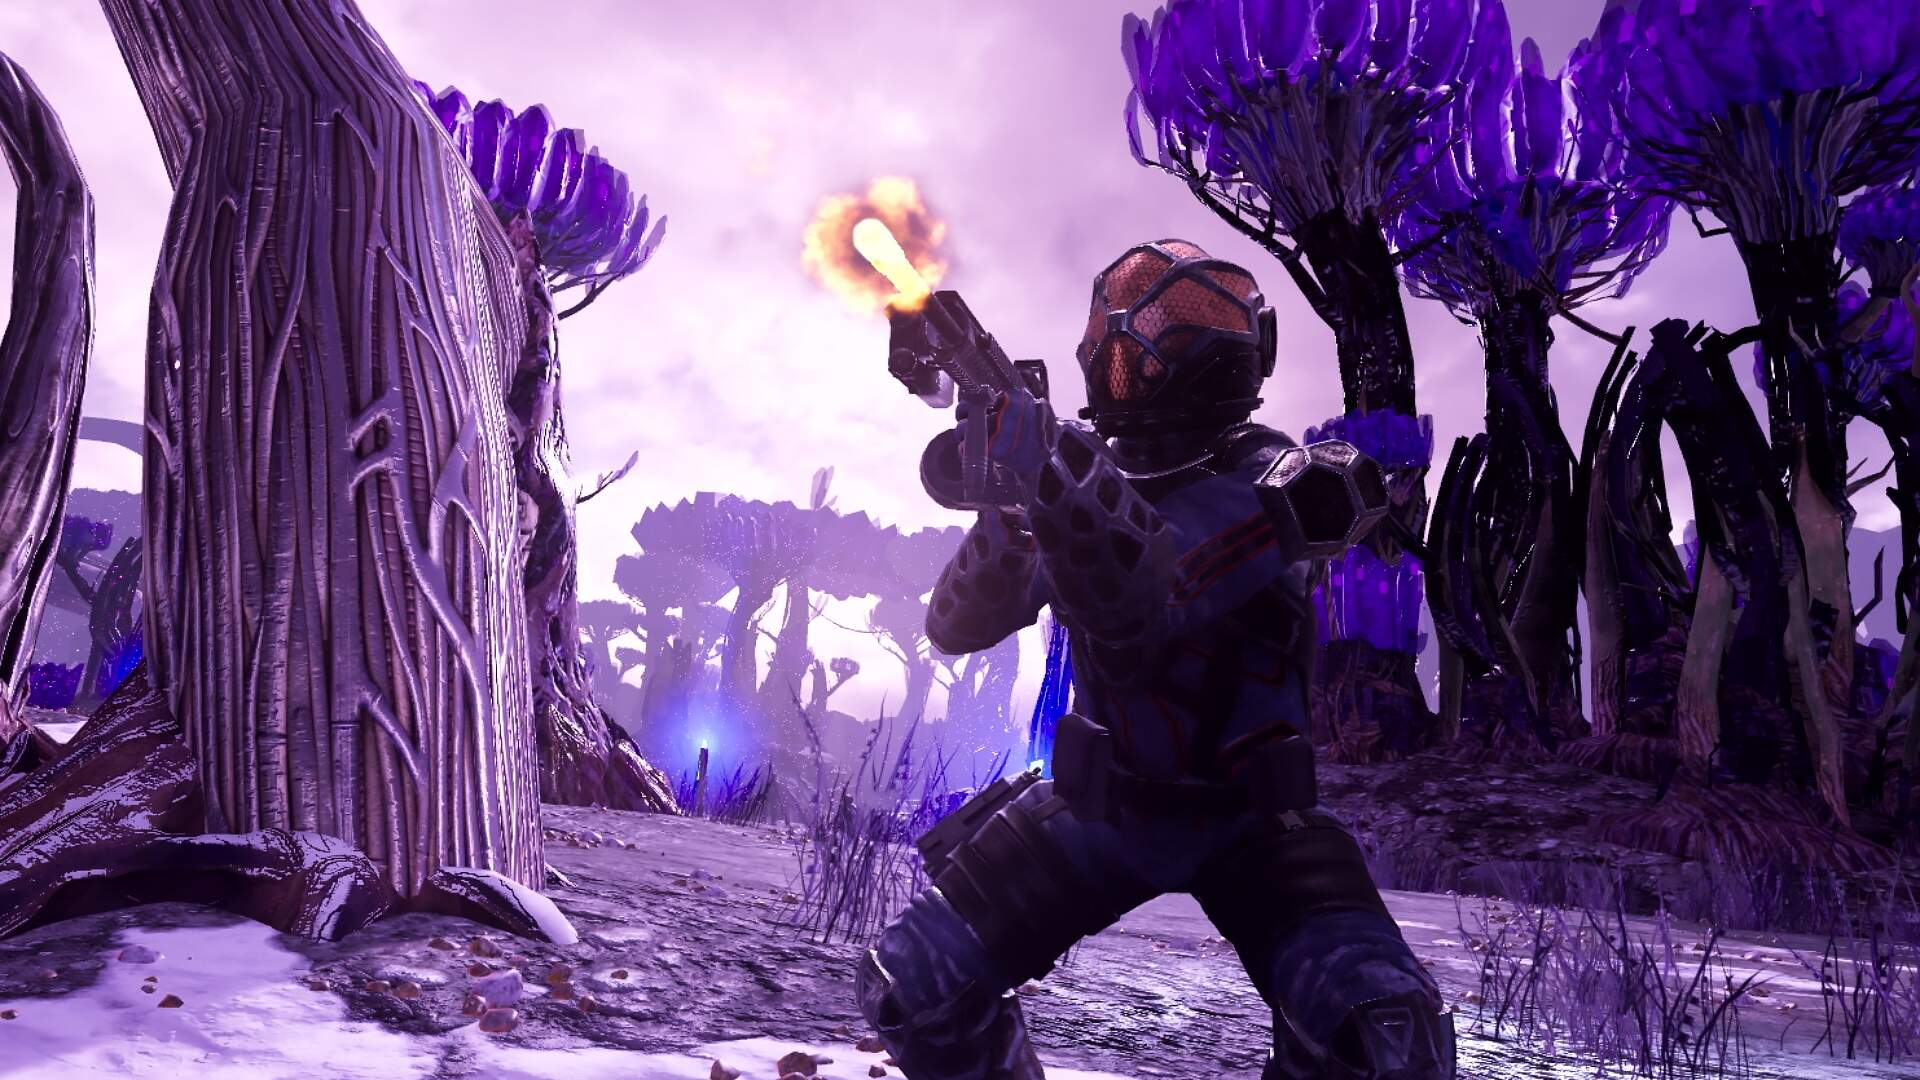 Frostpoint Is a New Multiplayer VR Shooter from inXile, Coming Later This Year